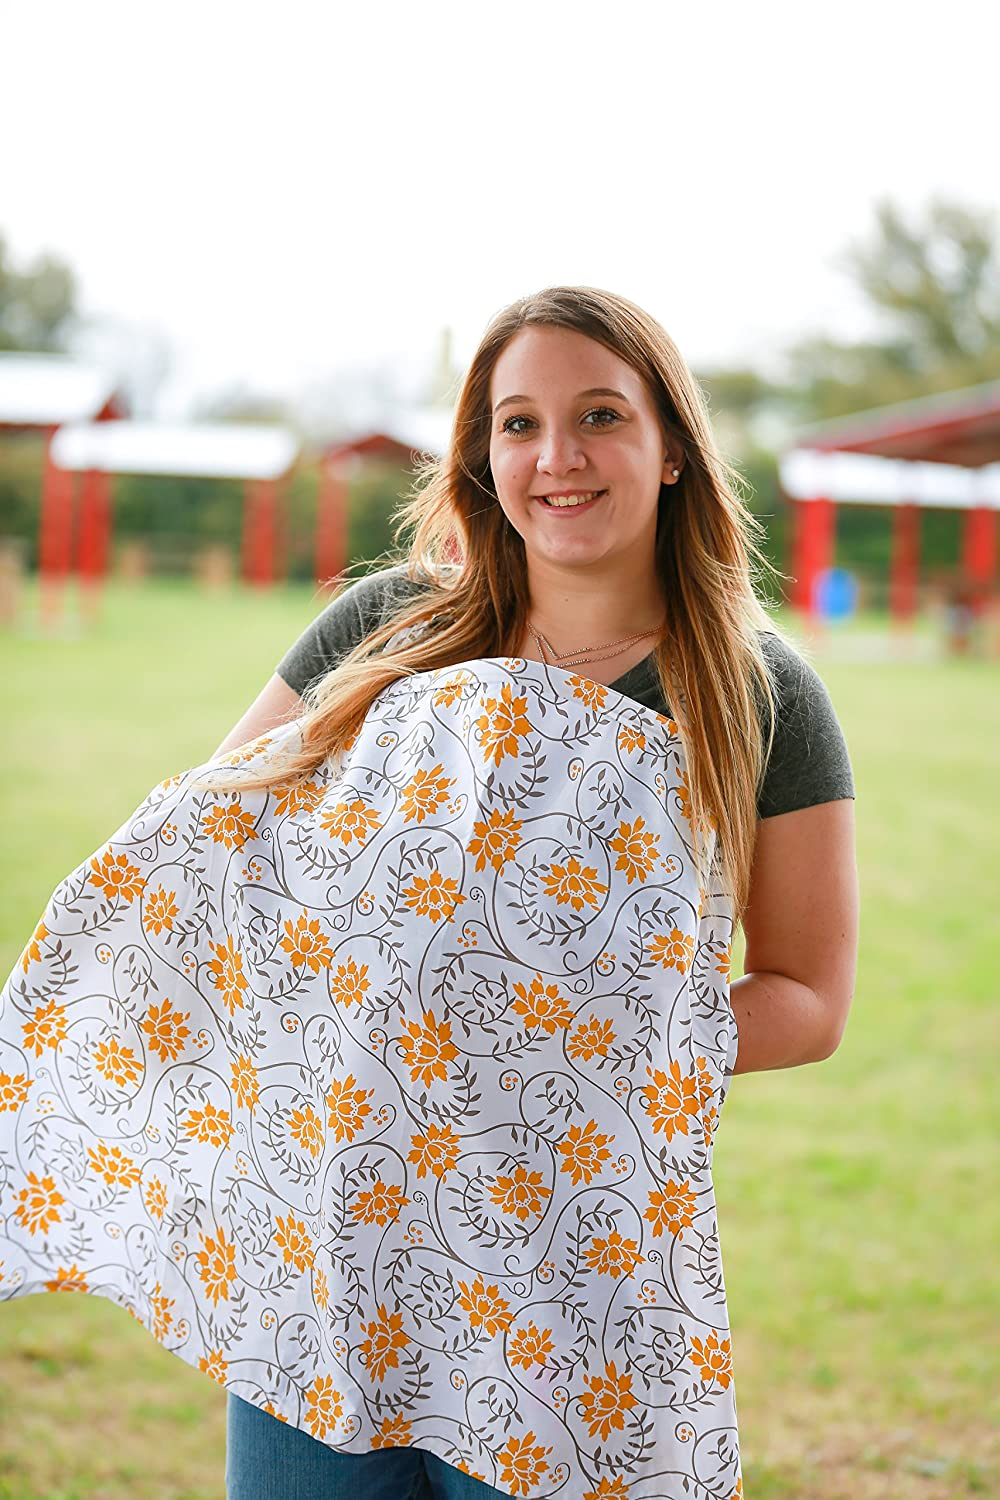 Extra wide FREE Bonus Matching Pouch 100/% cotton Premium Quality Nursing Breastfeeding cover with pockets